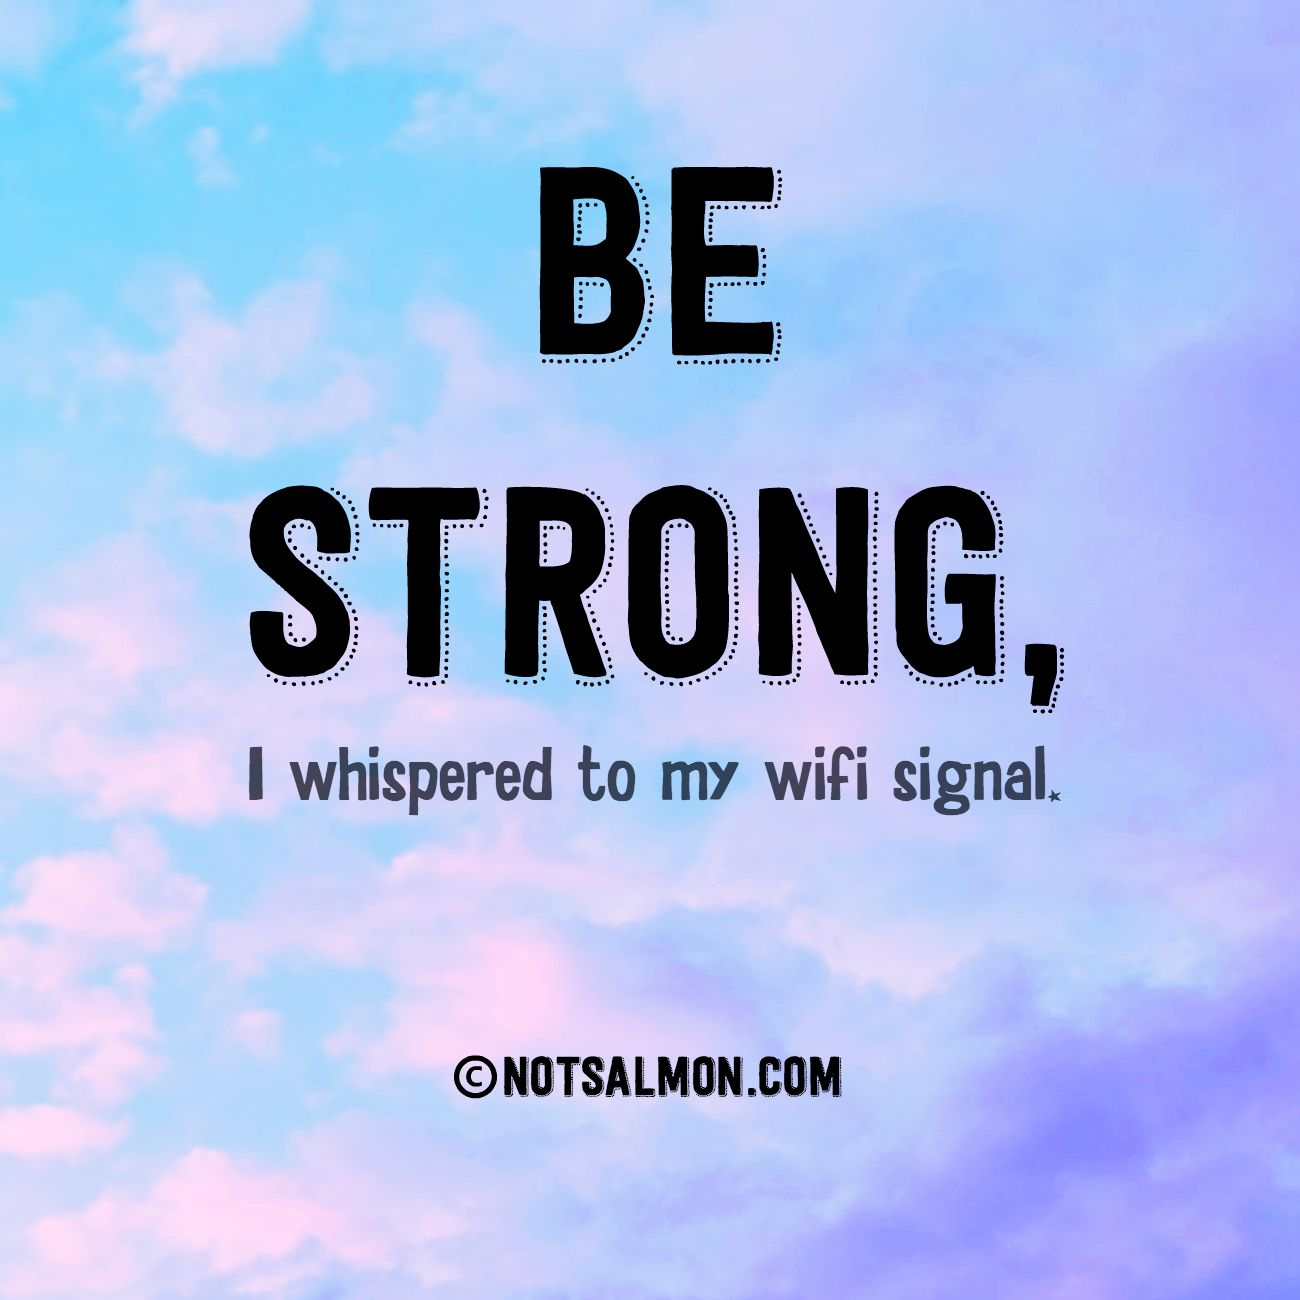 Funny Inspirational Quotes: Be Strong, I Whispered To My Wifi Signal. @notsalmon